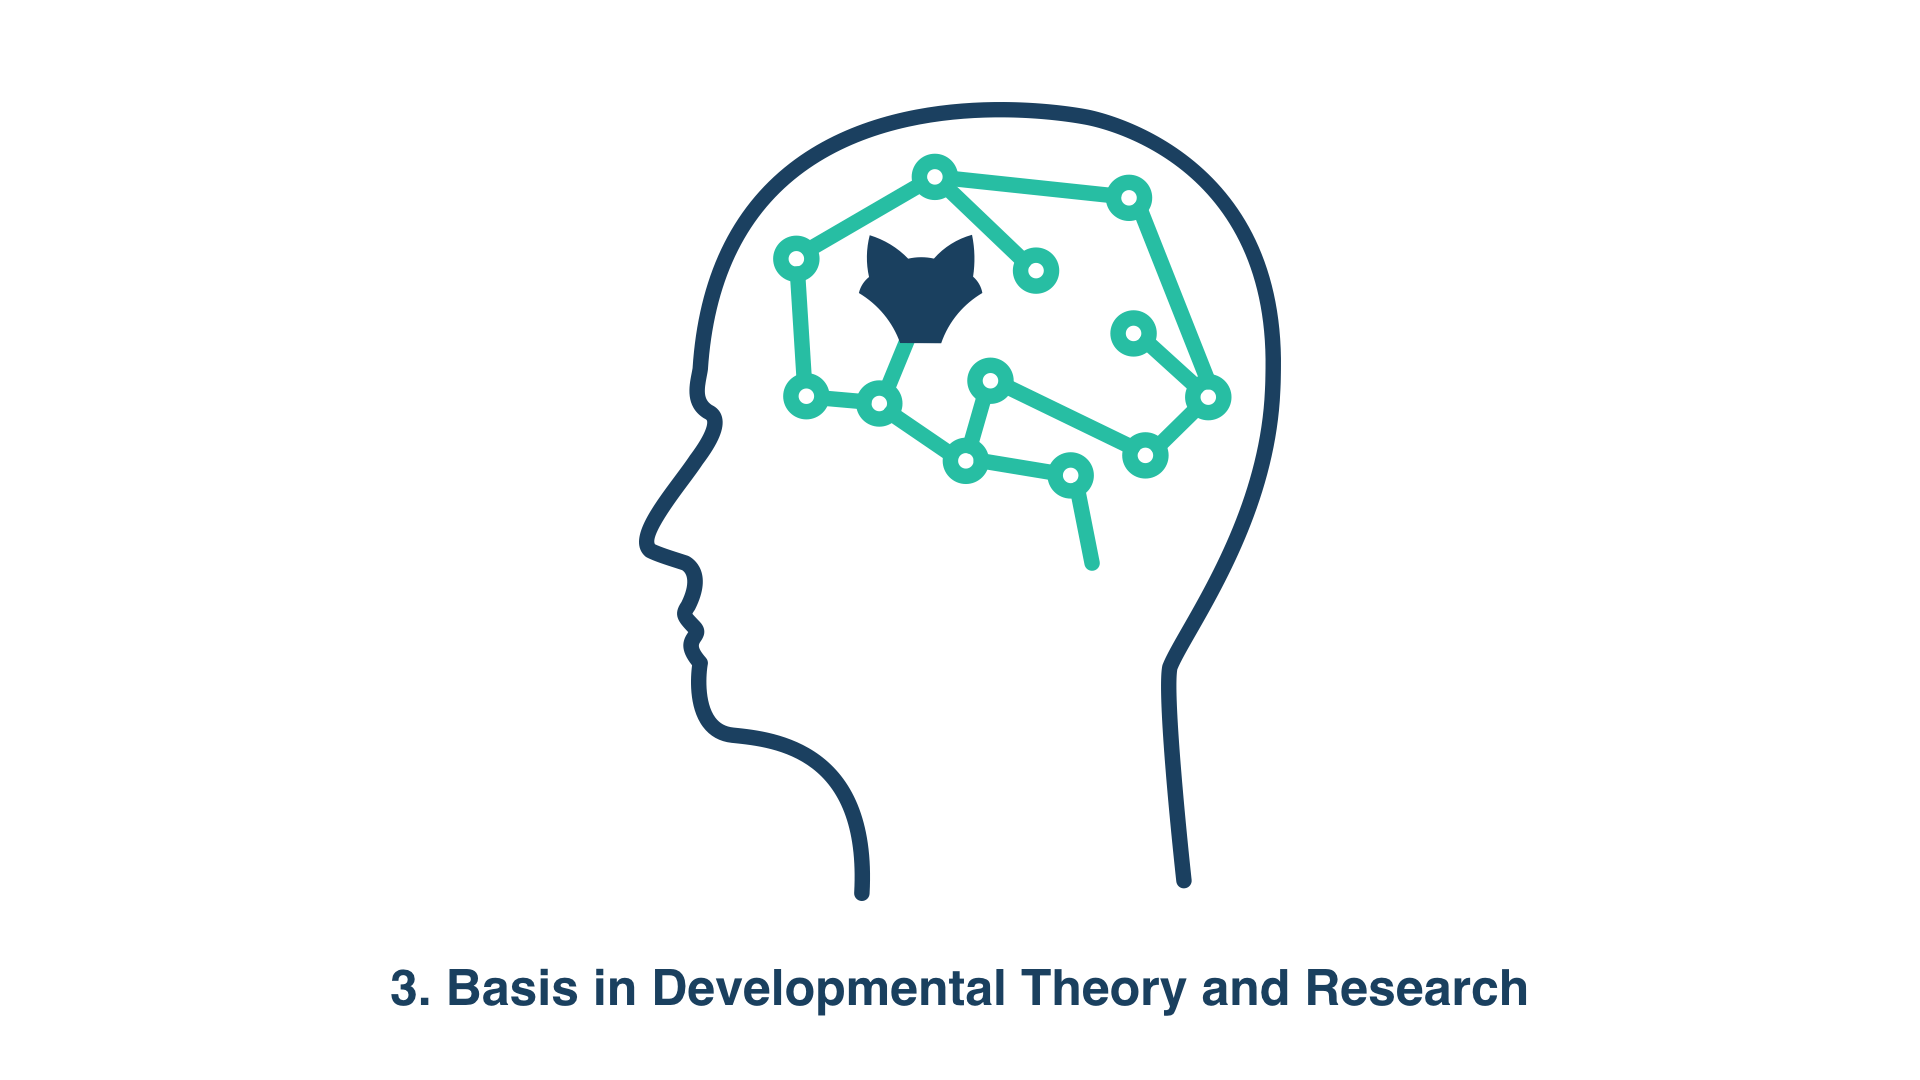 3. Basis in Developmental Theory and Research